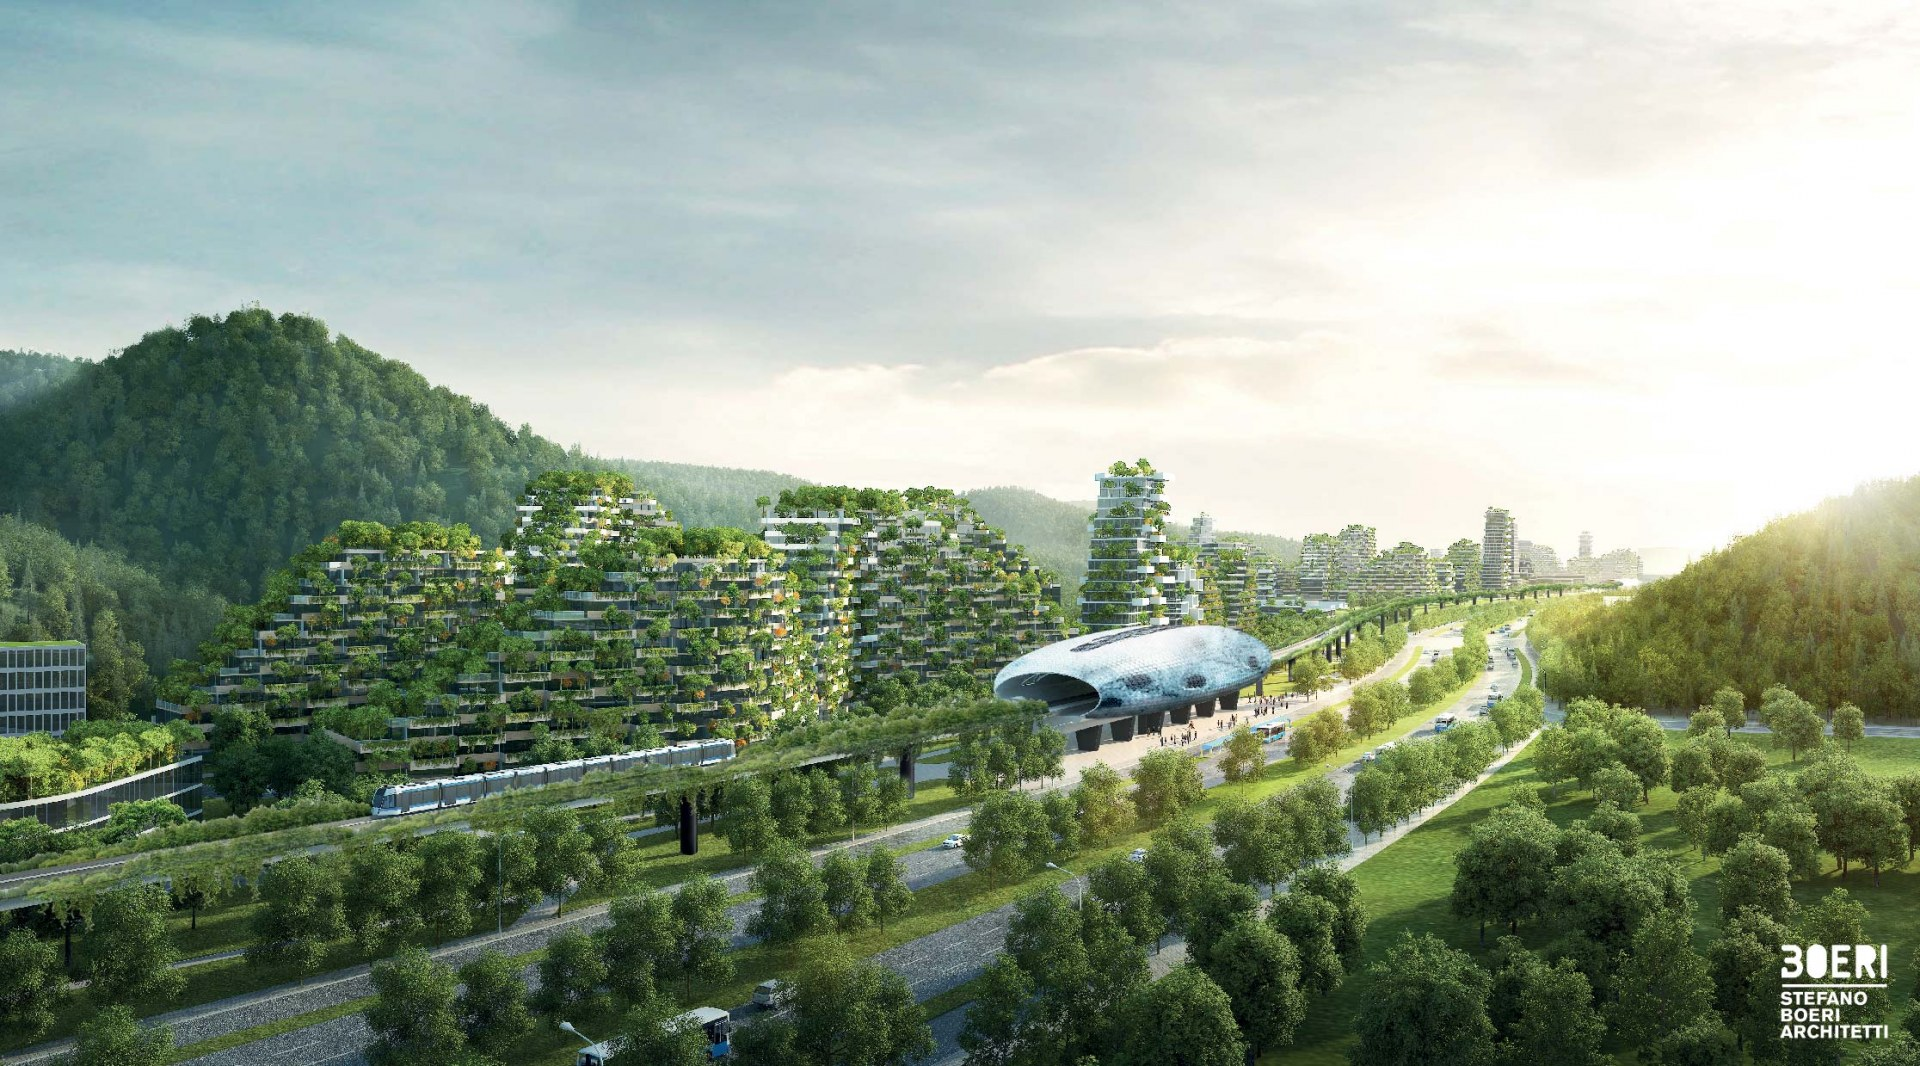 In an effort to combat air pollution and climate change, China is planning to construct the world's first city made up of vertical forests.